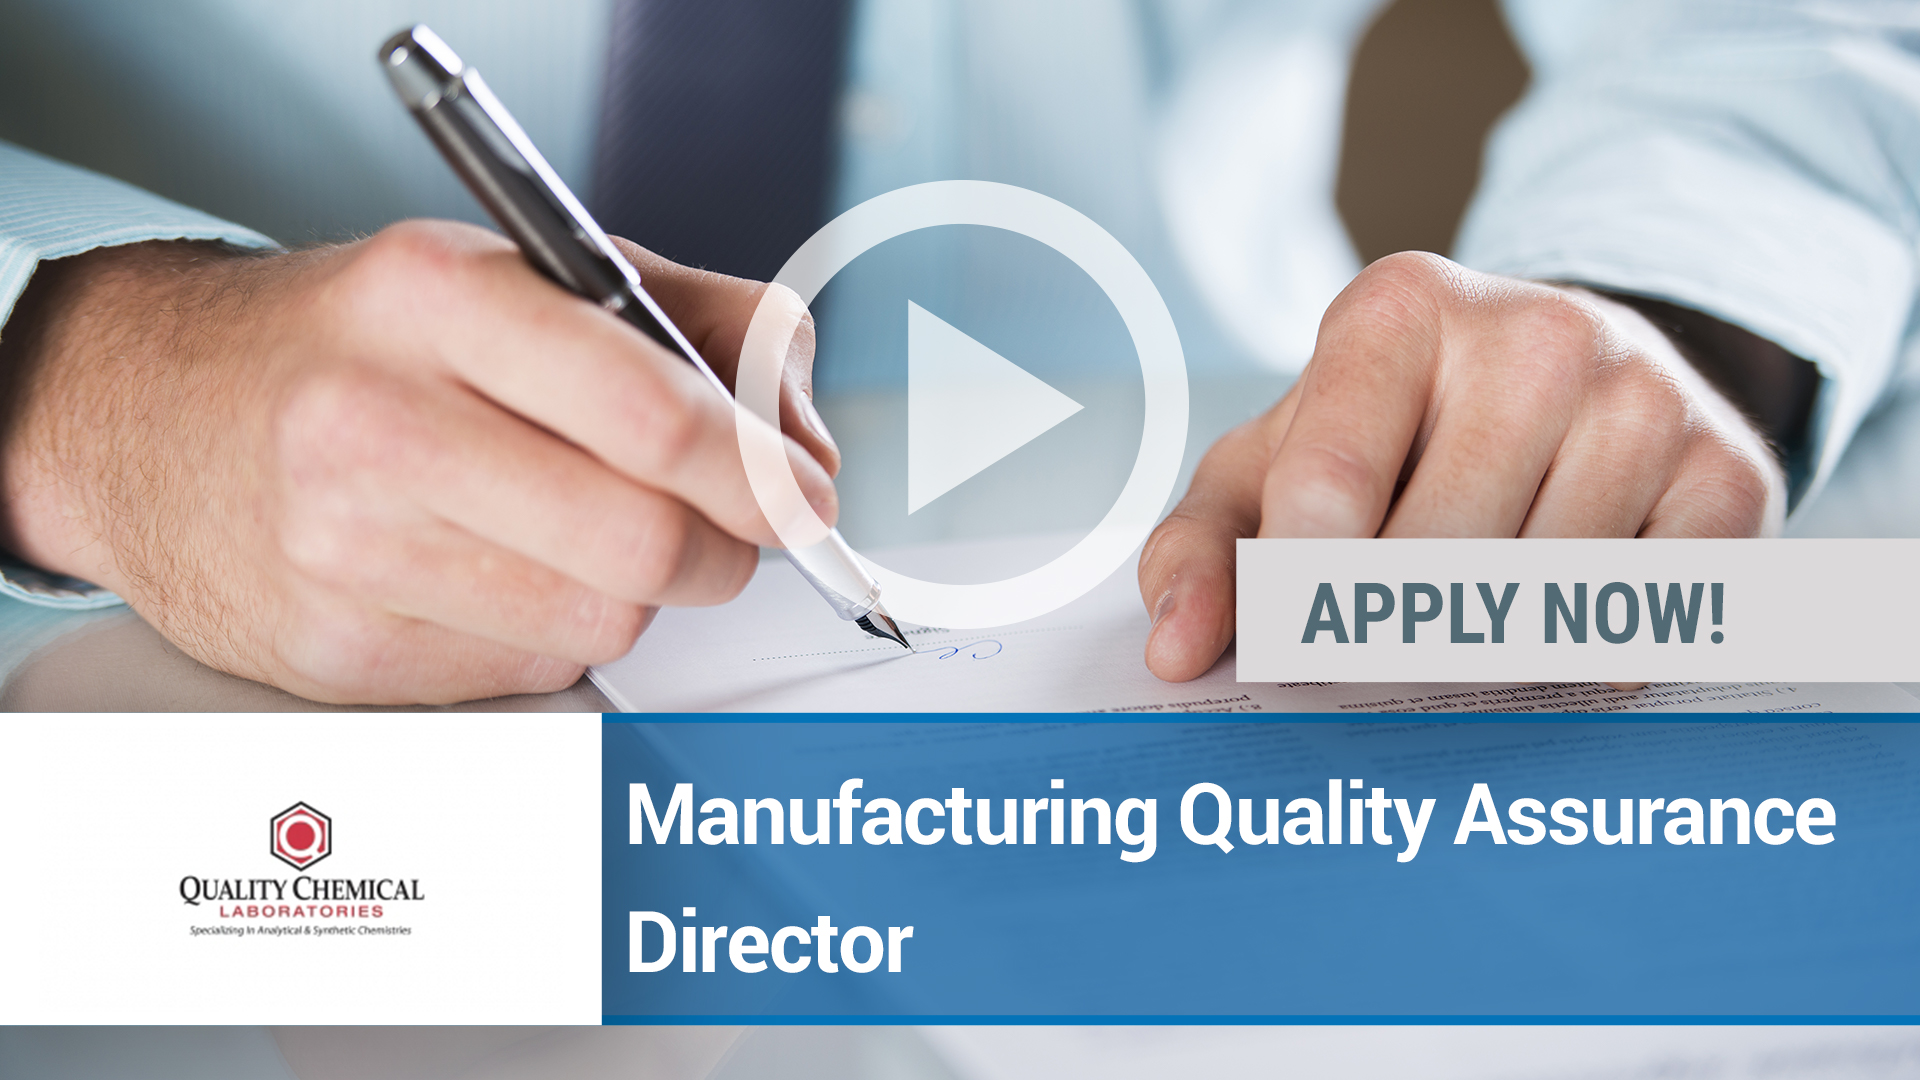 Watch our careers video for available job opening Manufacturing Quality Assurance Director in Wilmington, NC